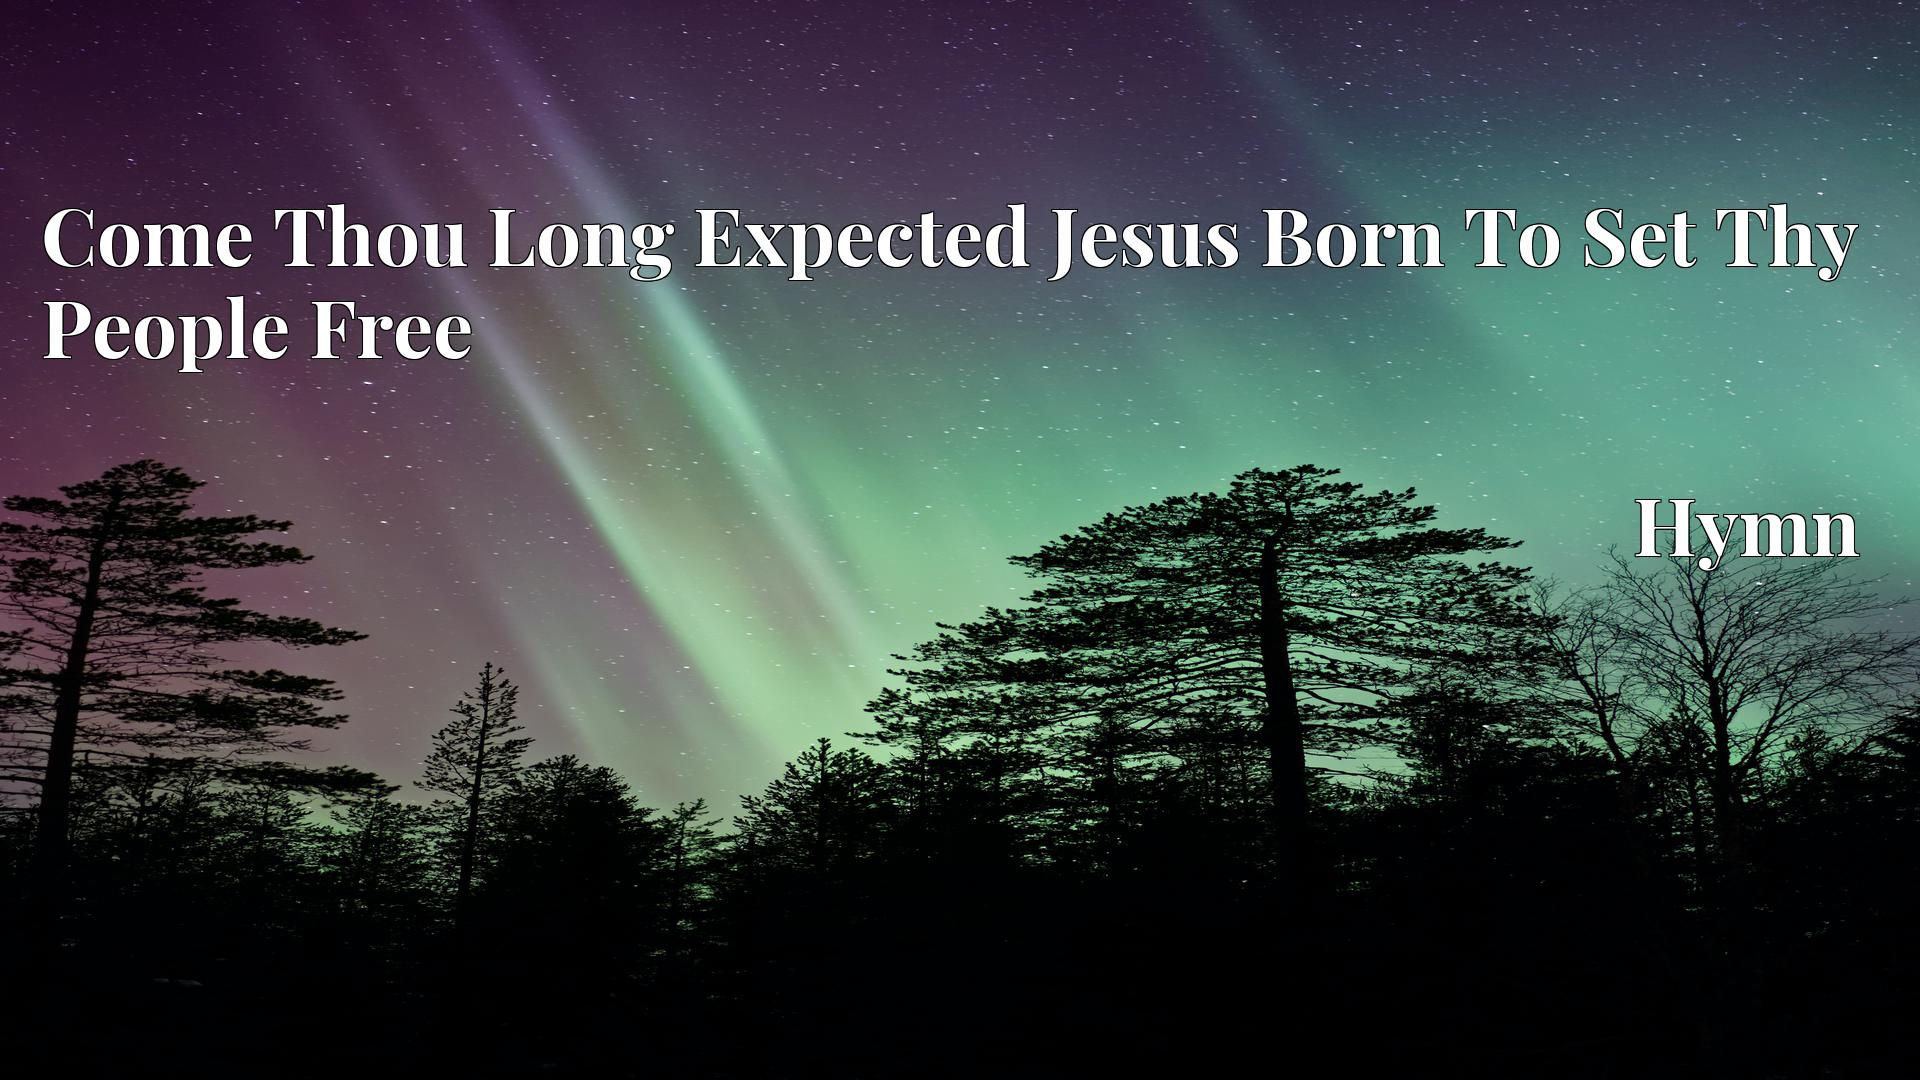 Come Thou Long Expected Jesus Born To Set Thy People Free Hymn Lyric